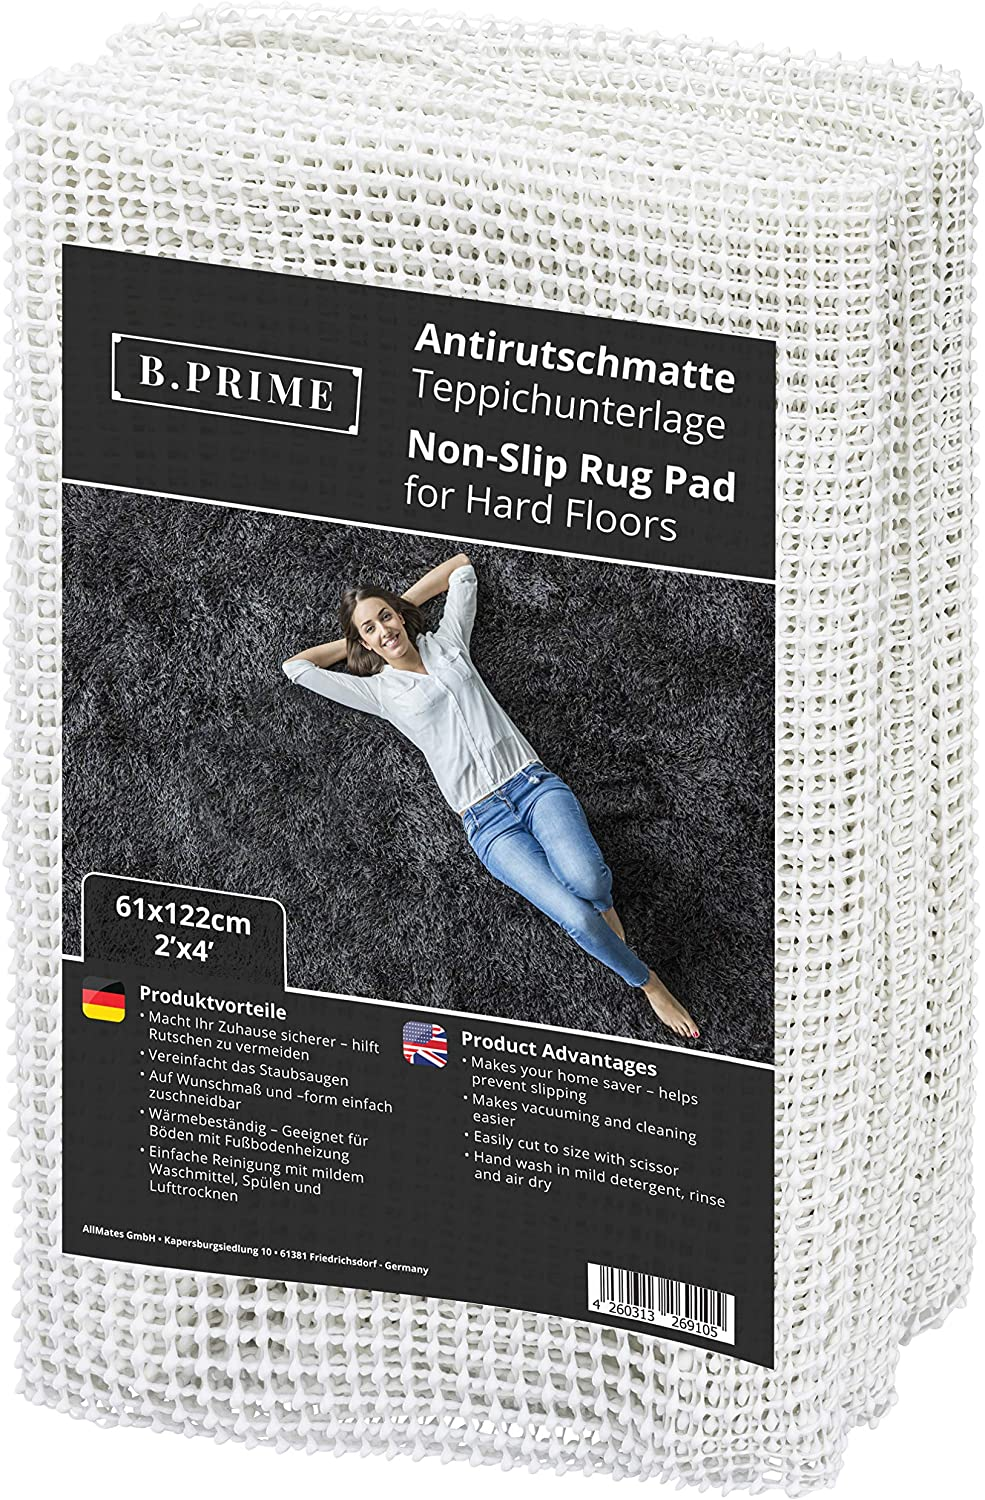 B.PRIME 2x4-Feet Non-Slip Rug Underlay Pad for Hard Floors. Different Size Options Available